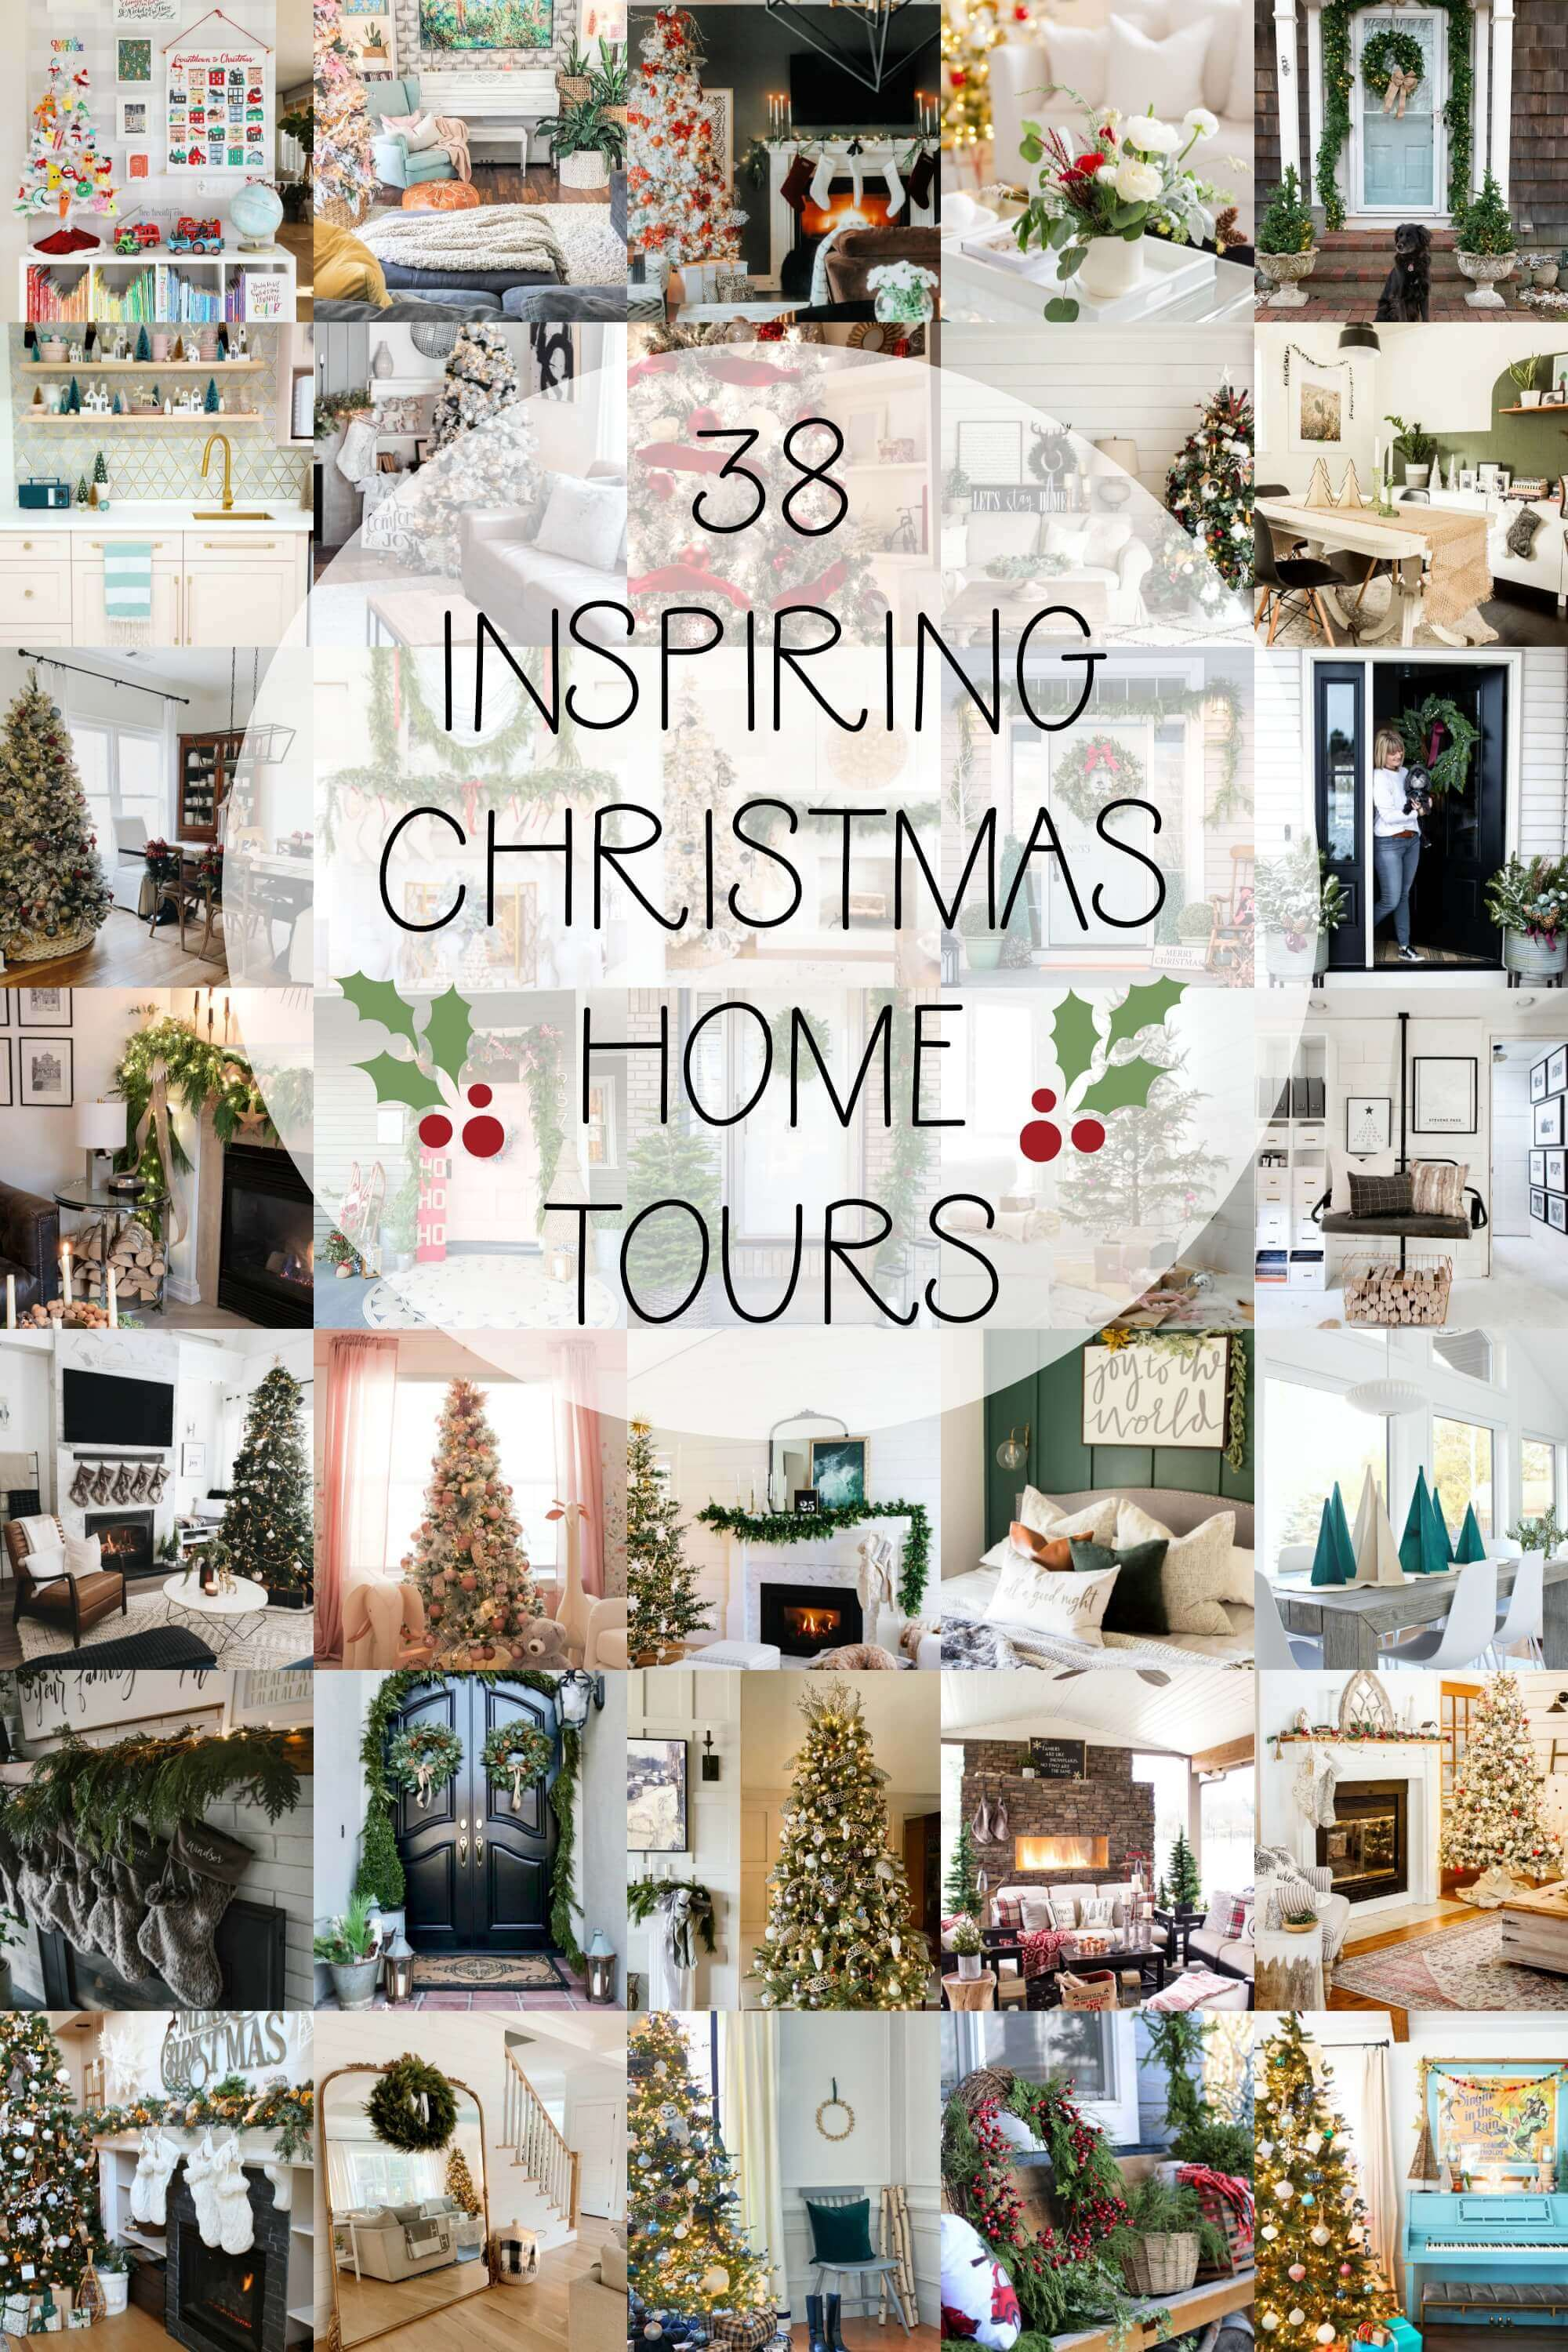 38 Inspiring Christmas home tours you won't want to miss!